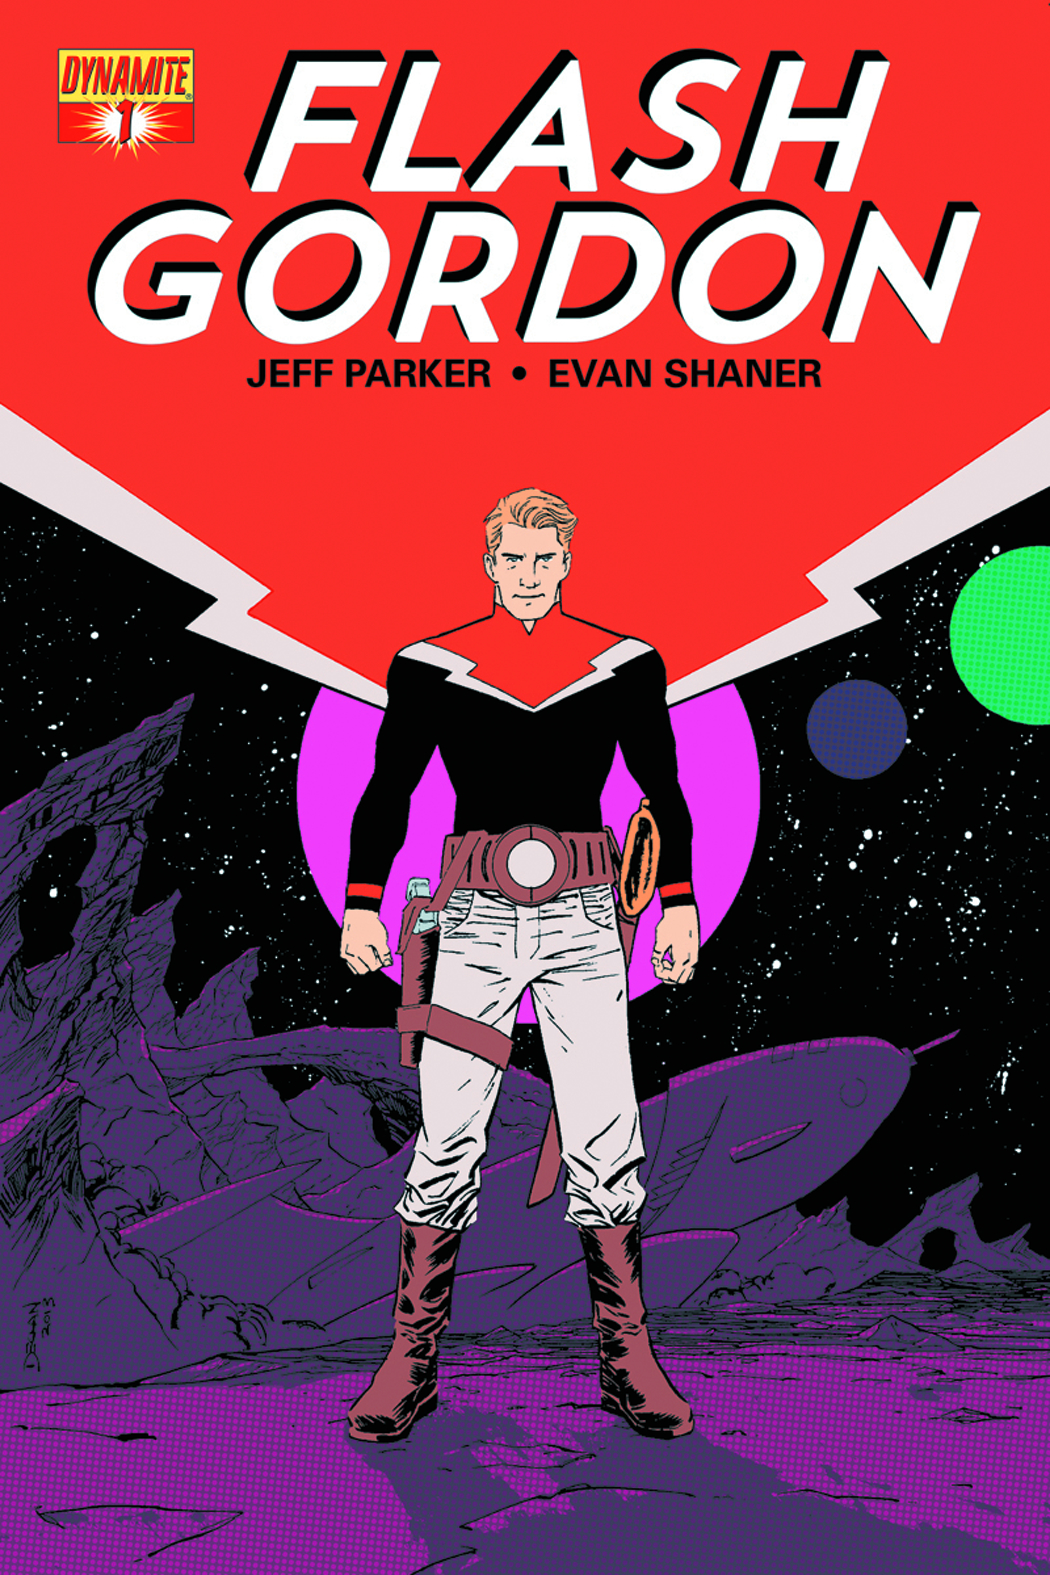 FLASH GORDON #1 CVR C SHALVEY